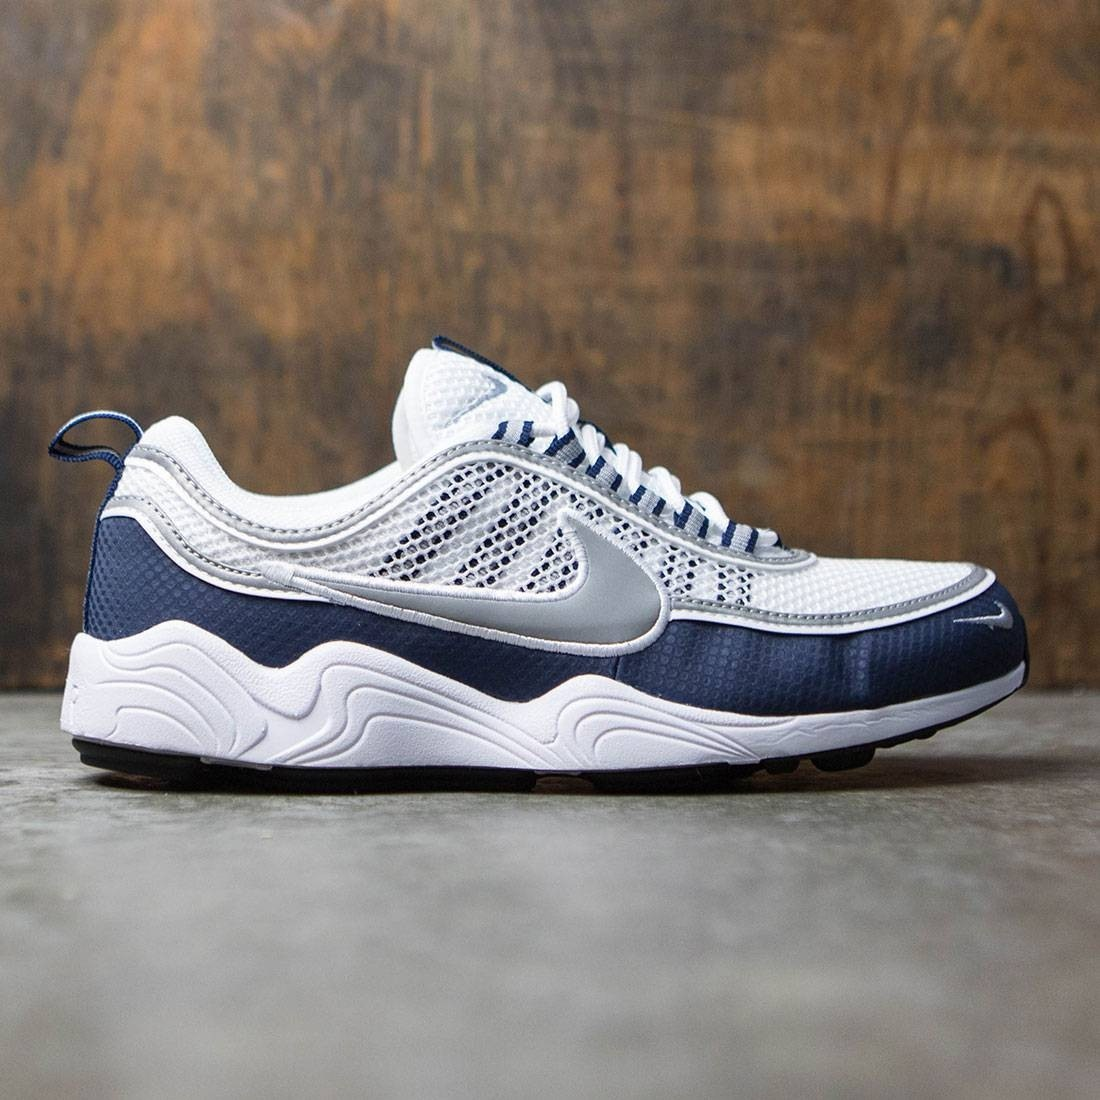 nike air zoom spiridon summer qs sneakers. Black Bedroom Furniture Sets. Home Design Ideas